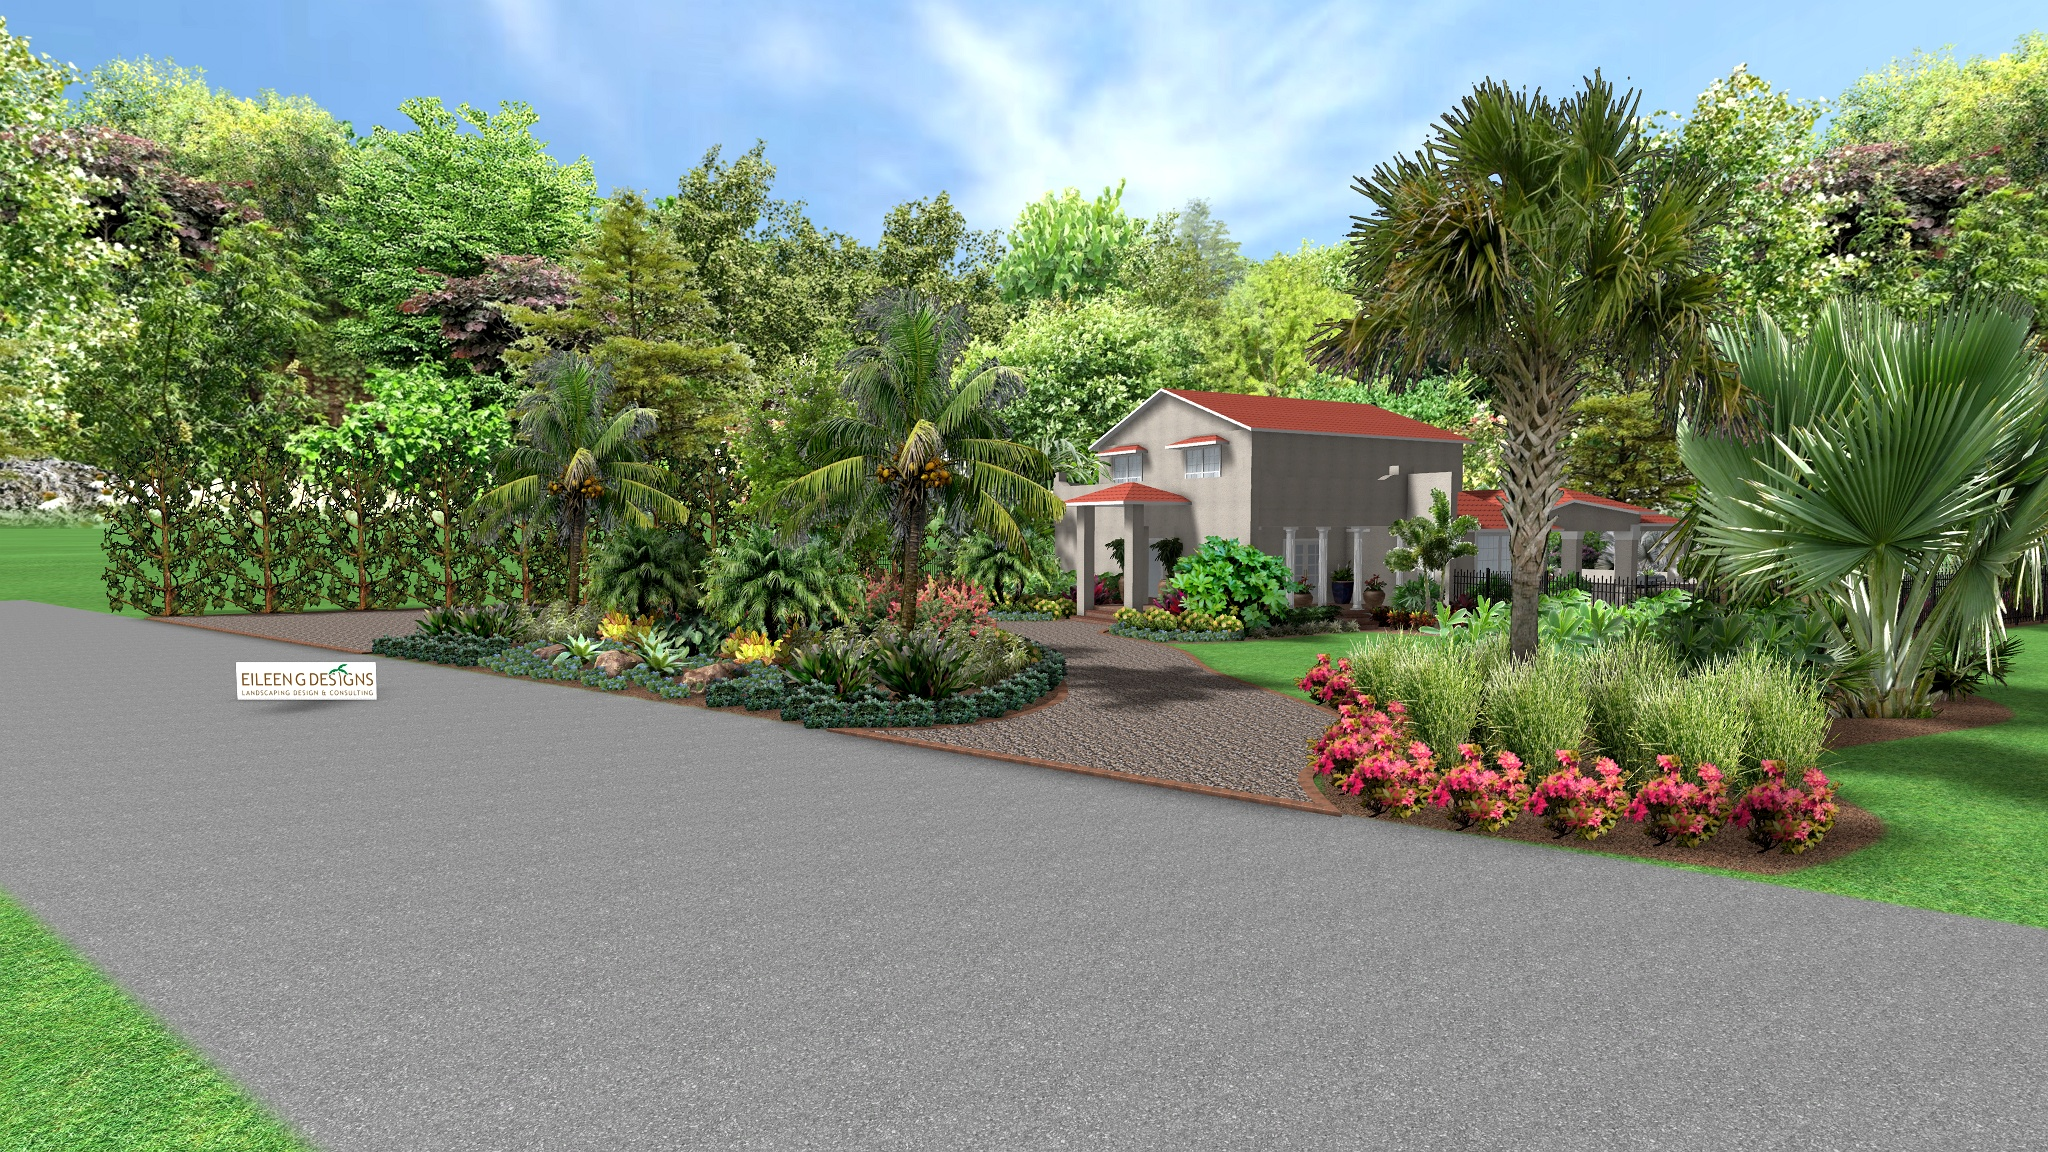 Landscape Architect Palm City, FL